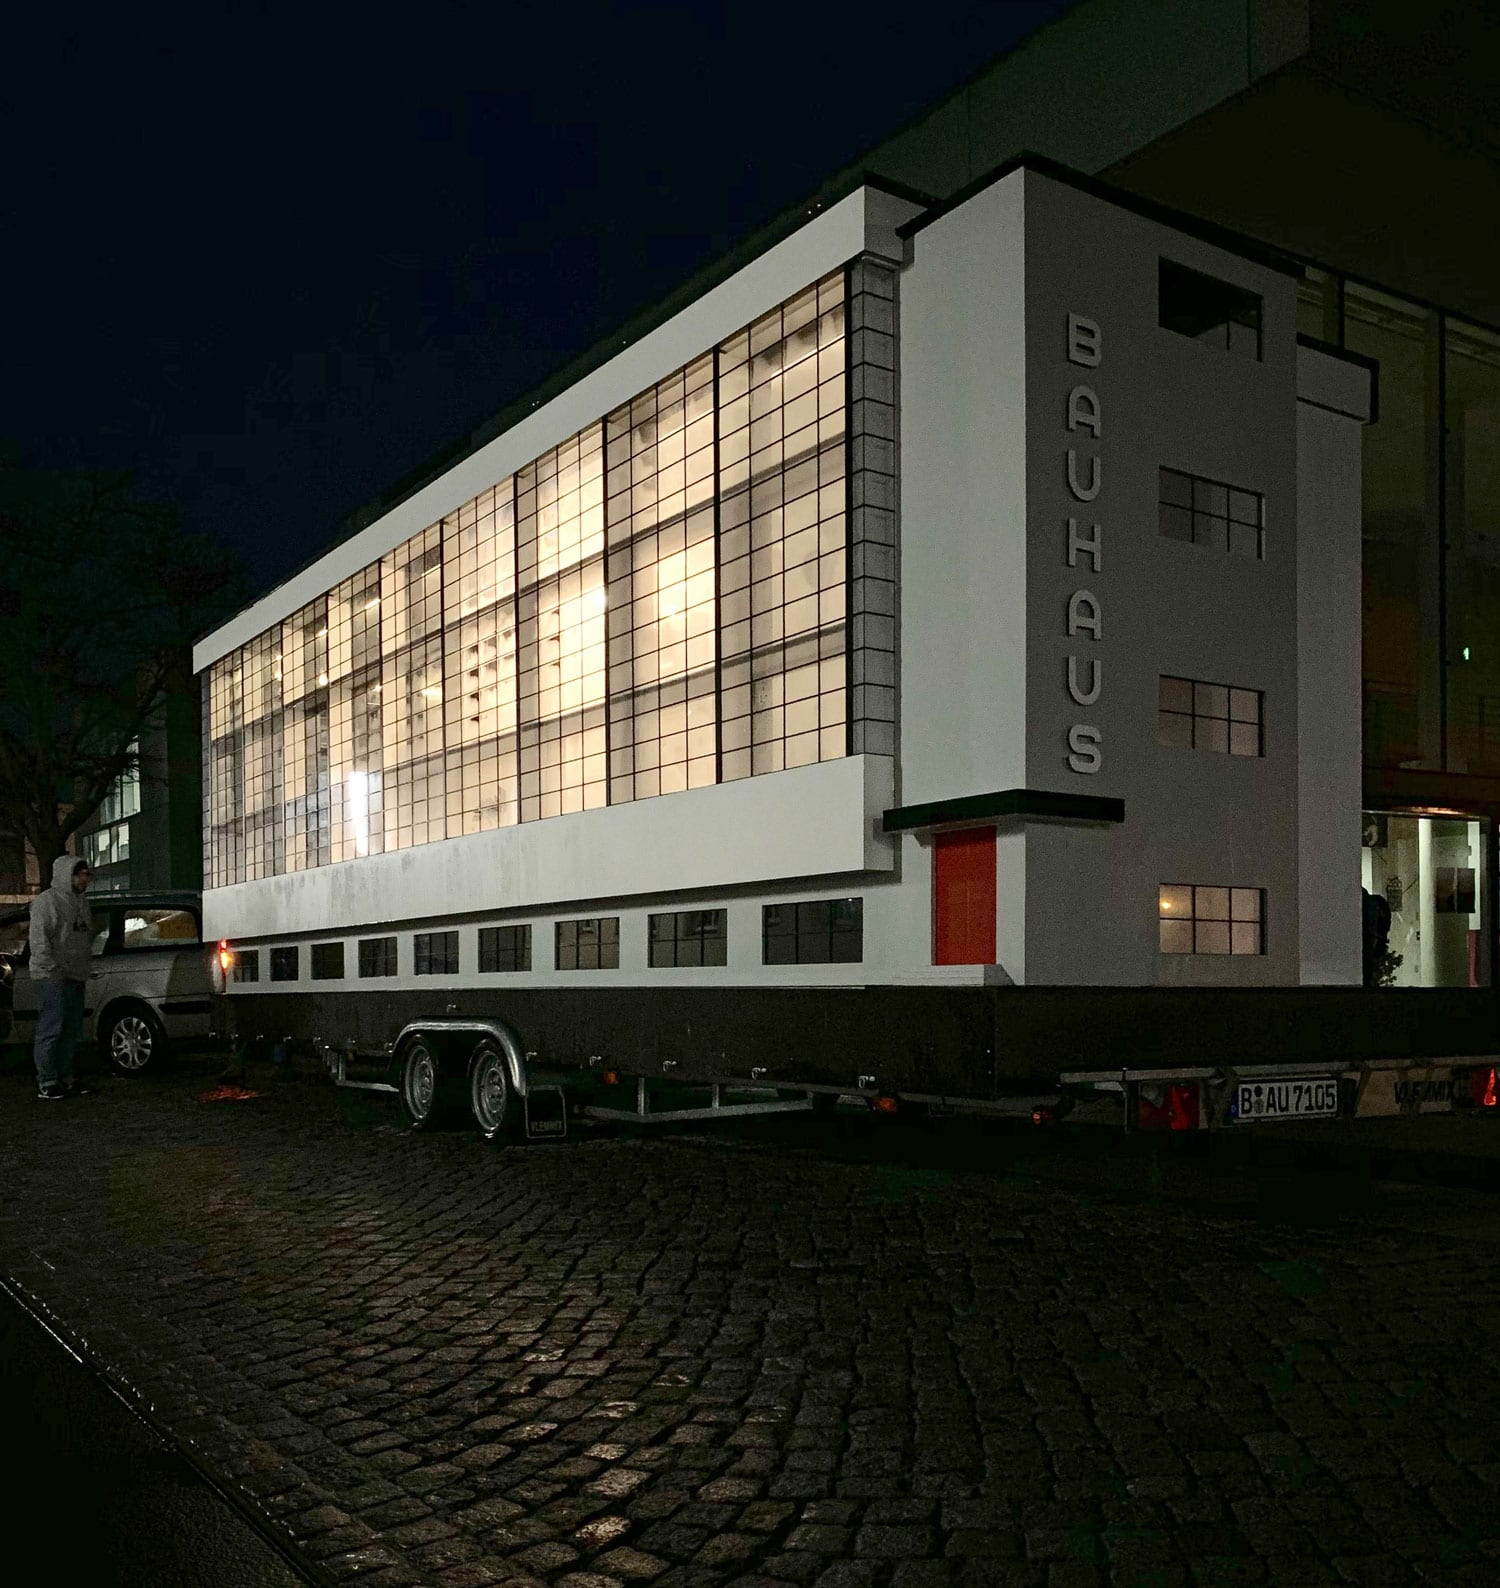 Bauhaus Bus on World Tour in Honour of the School's Centennial | Yellowtrace